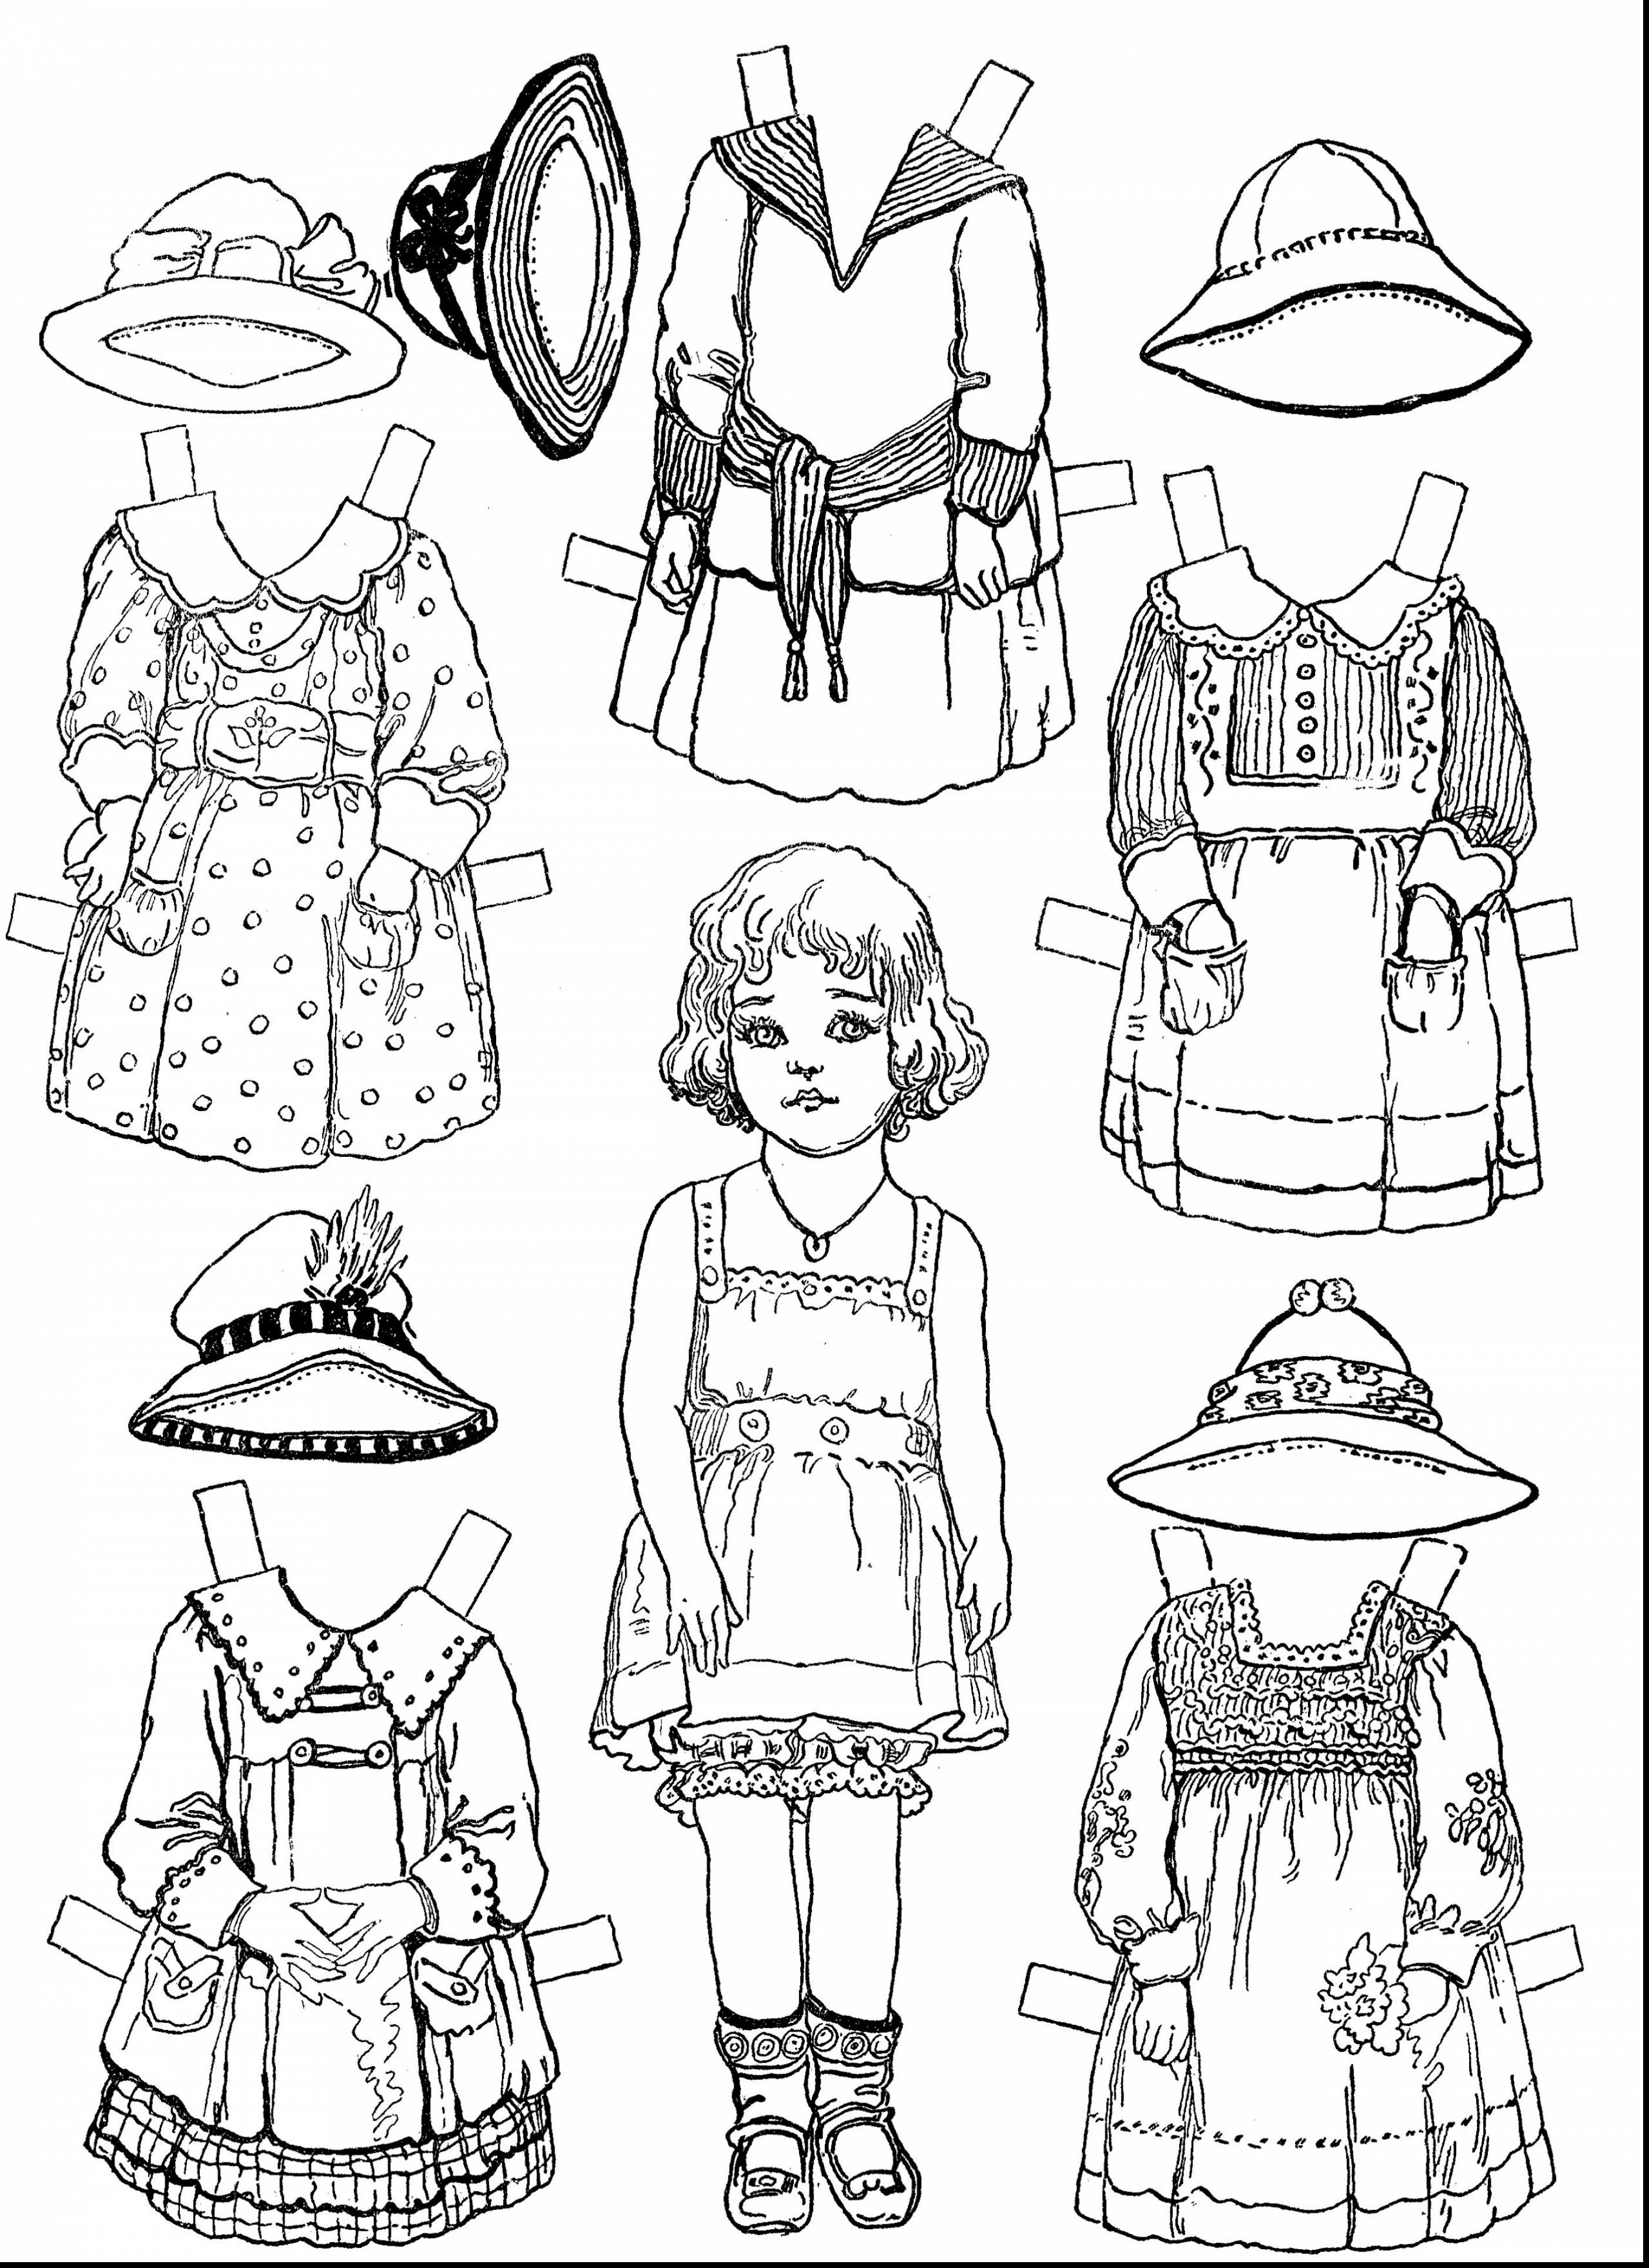 terrific printable paper dolls coloring pages with doll coloring pages and paper doll coloring pages - Paper Doll Coloring Pages